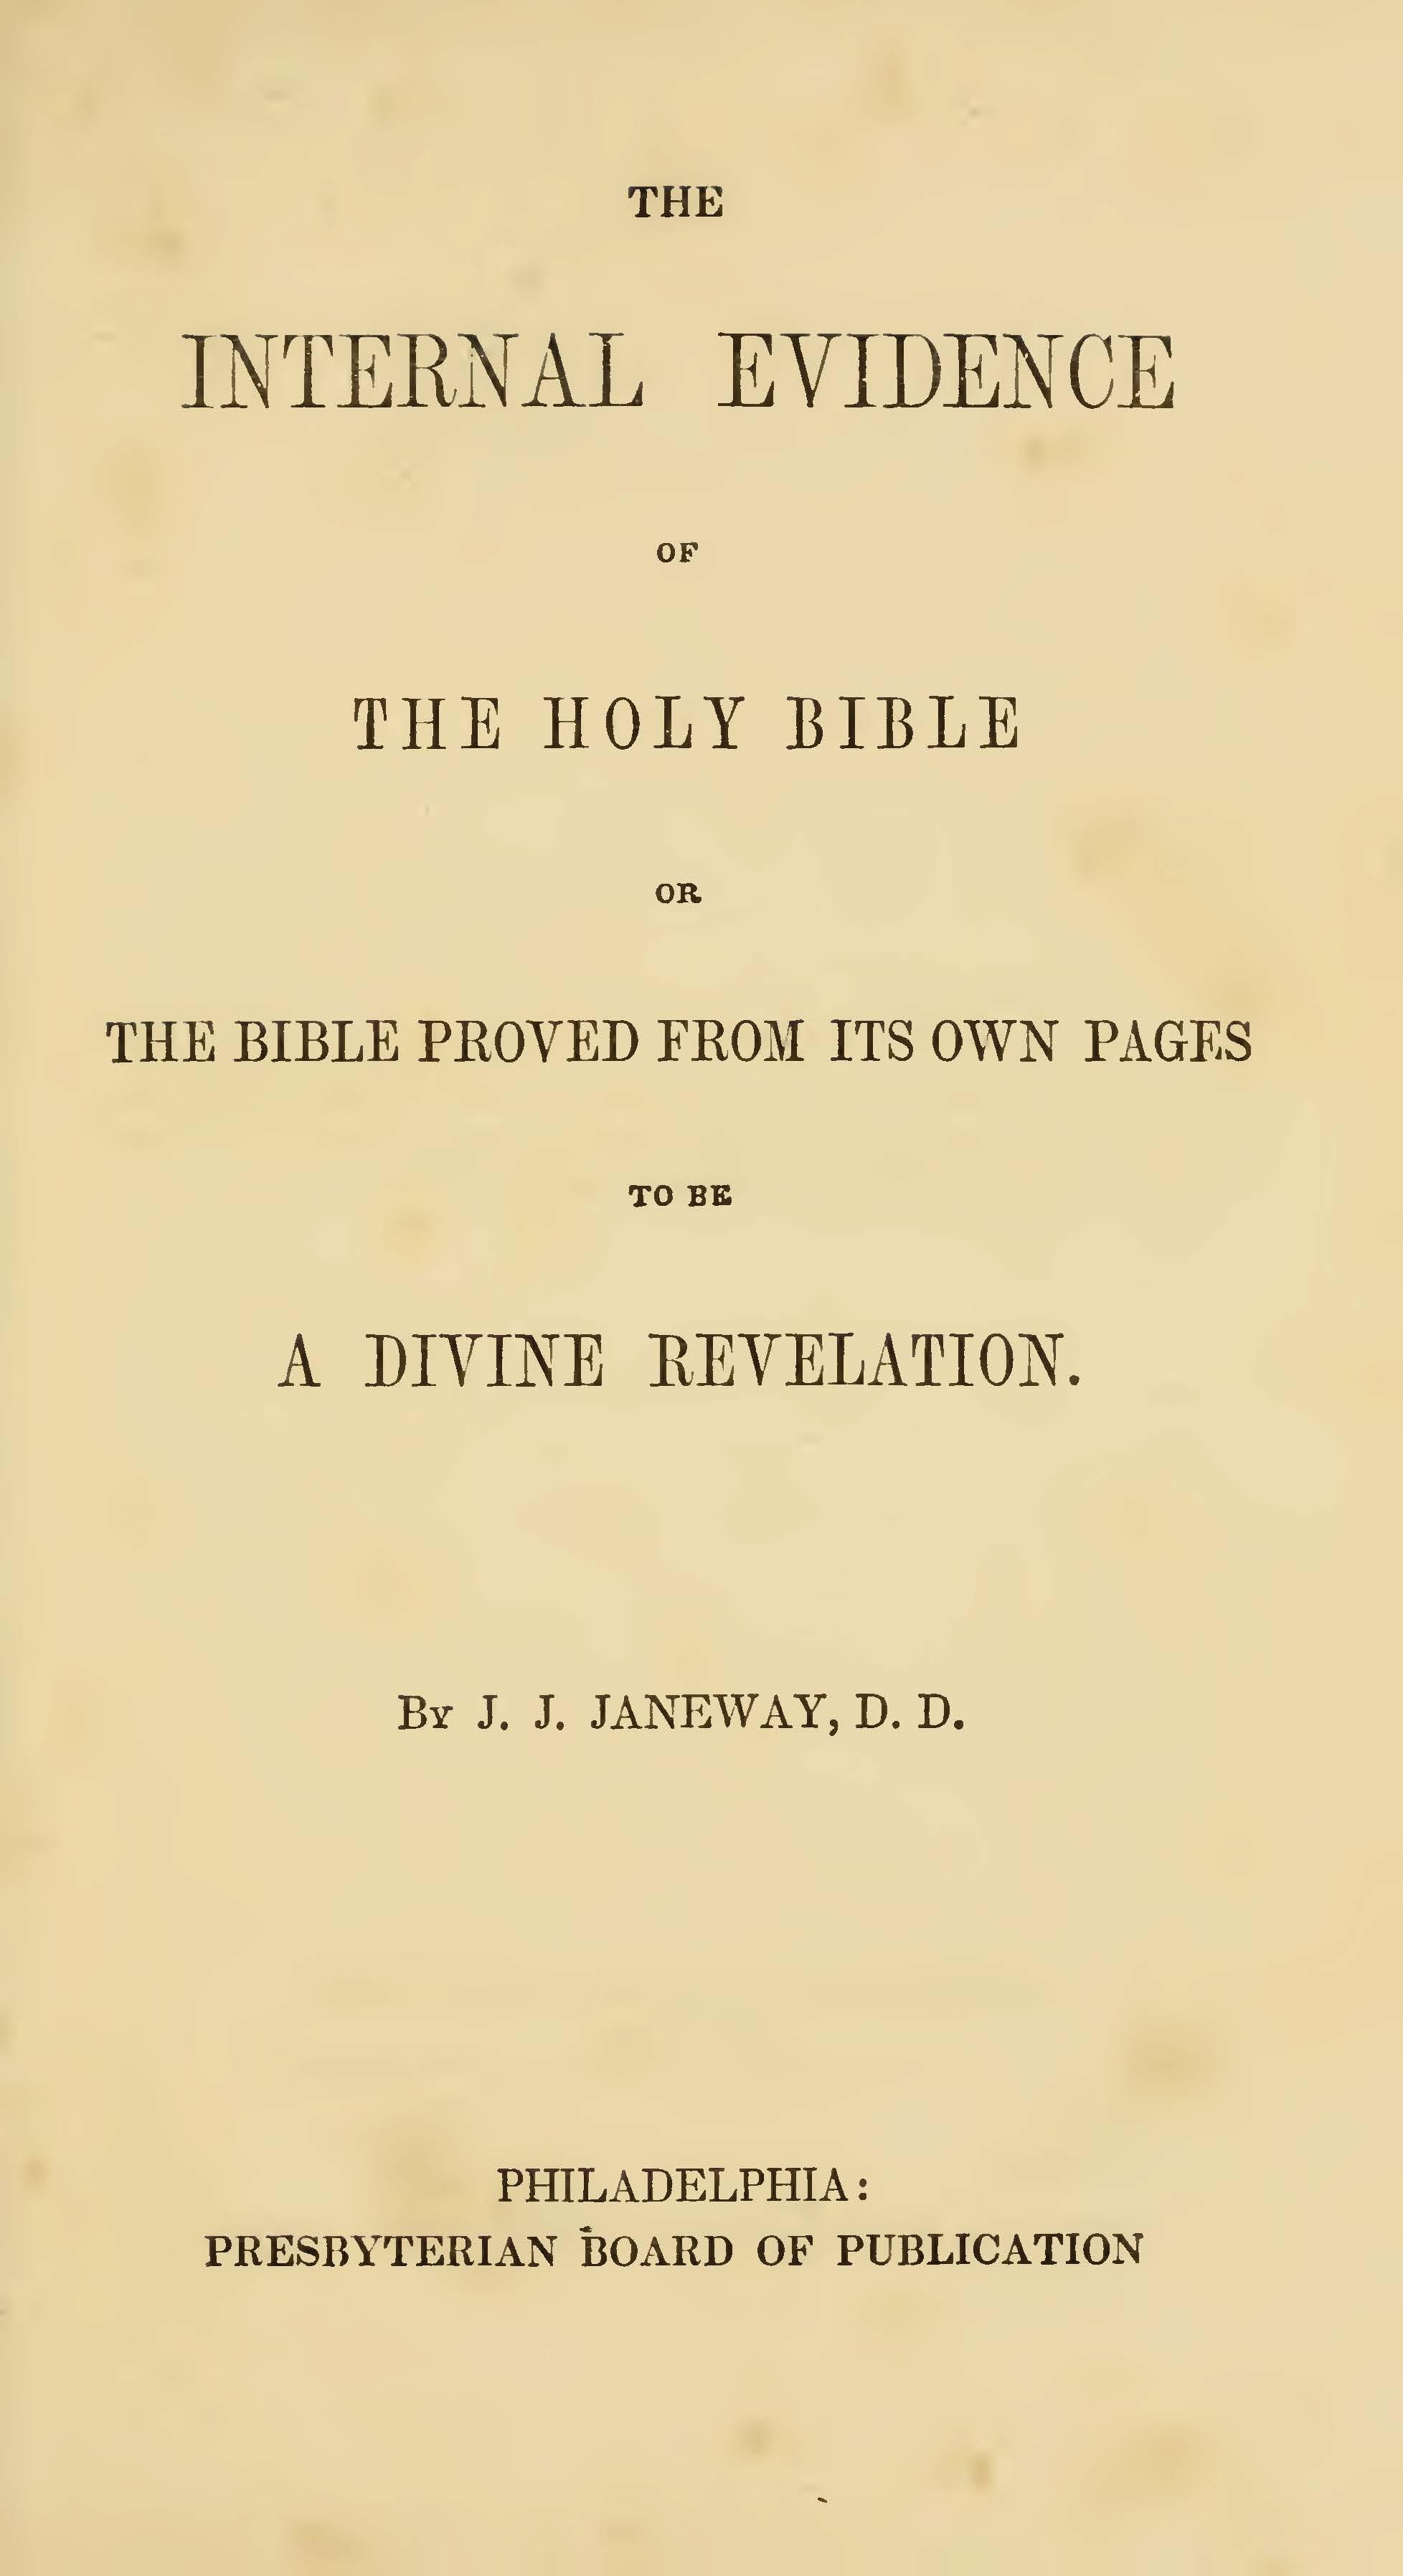 Janeway, Jacob Jones, The Internal Evidence of the Holy Bible Title Page.jpg